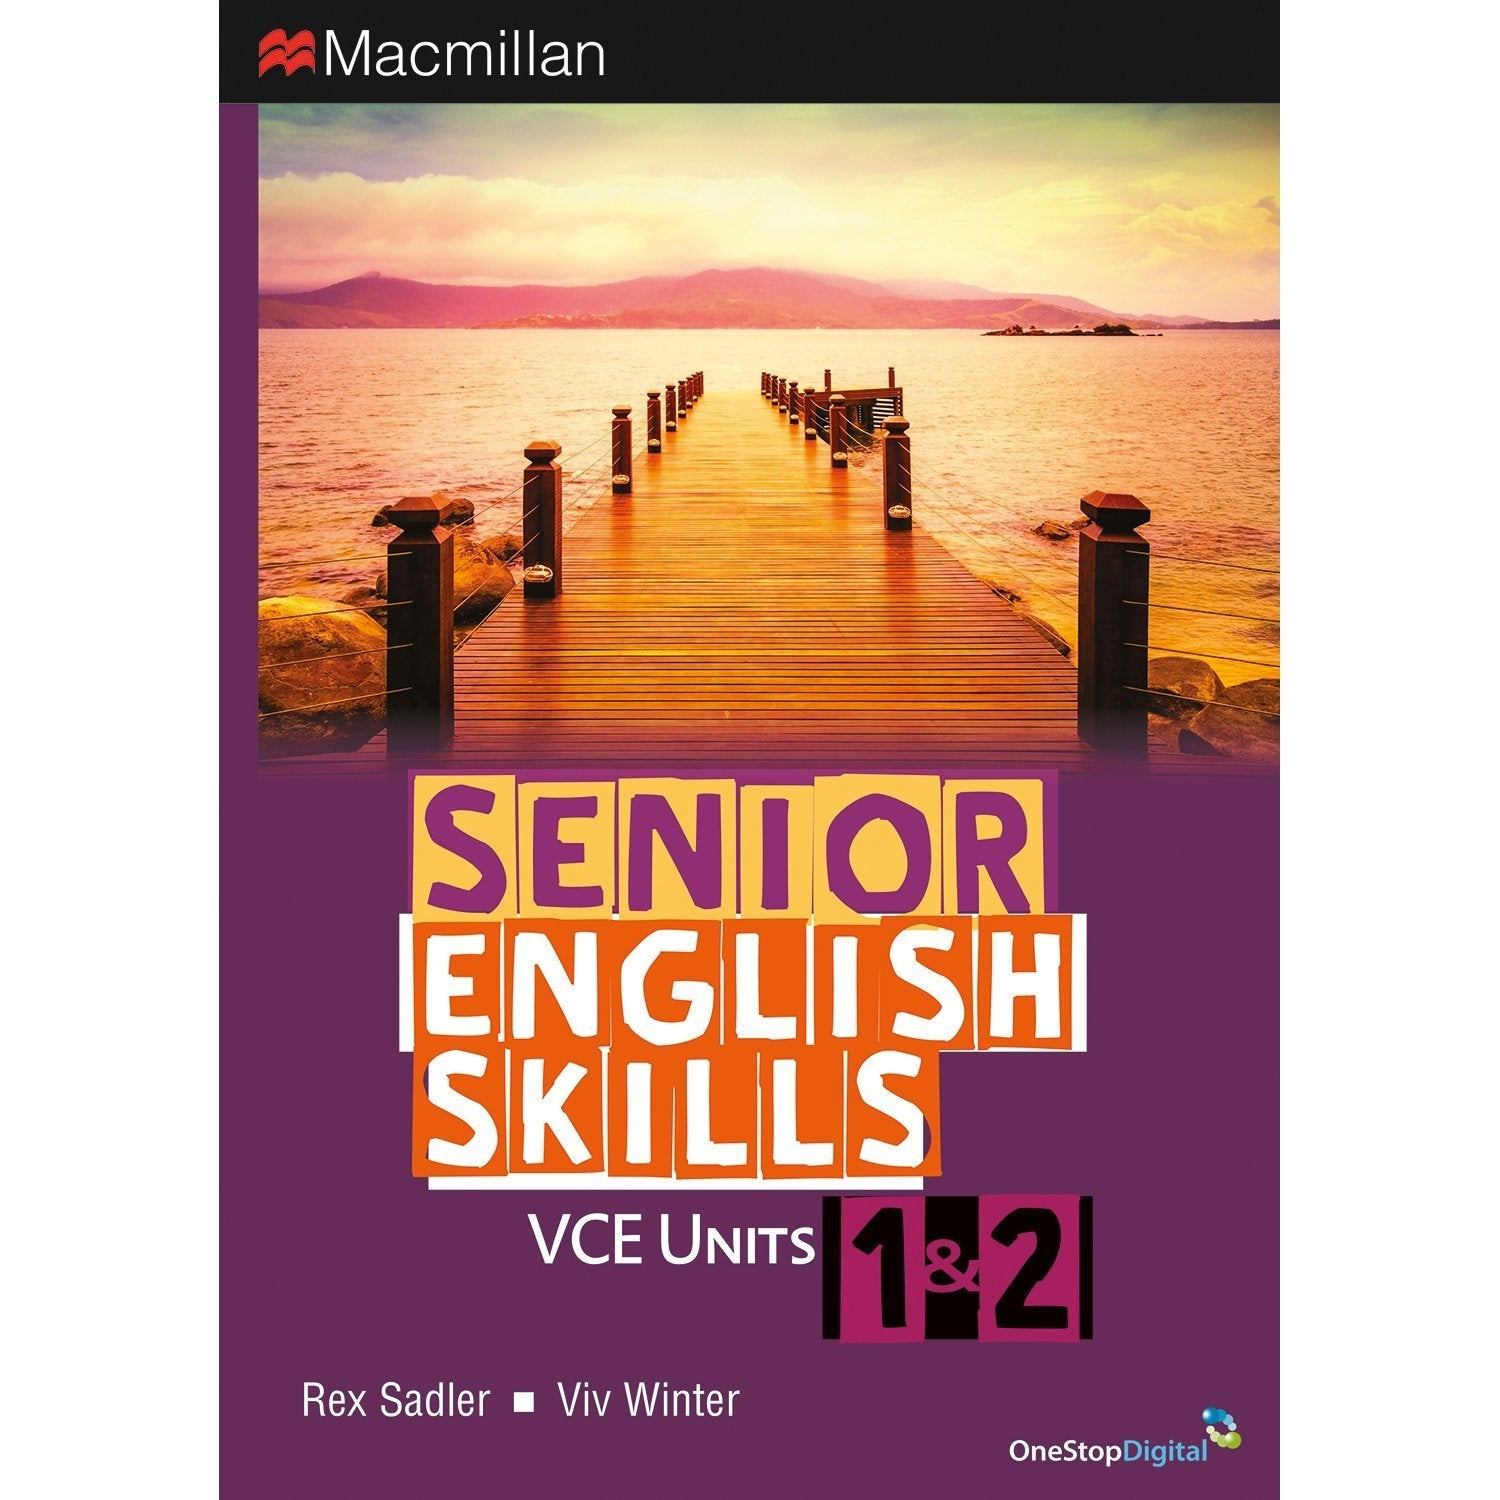 Senior English Skills VCE Units 1&2 Student Book